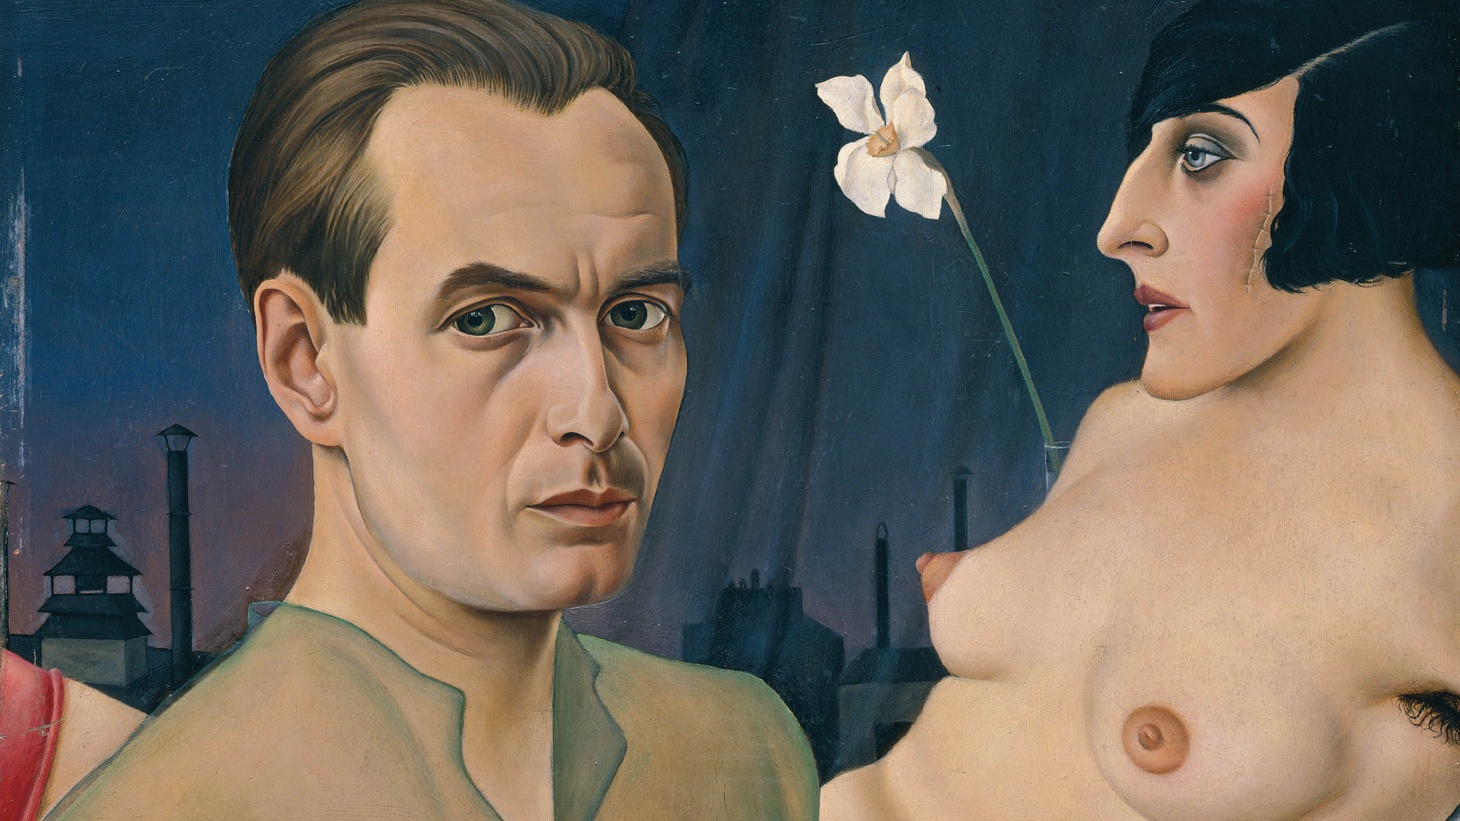 Hunter Drohojowska-Philp talks about the very strange art made in Weimar Germany.